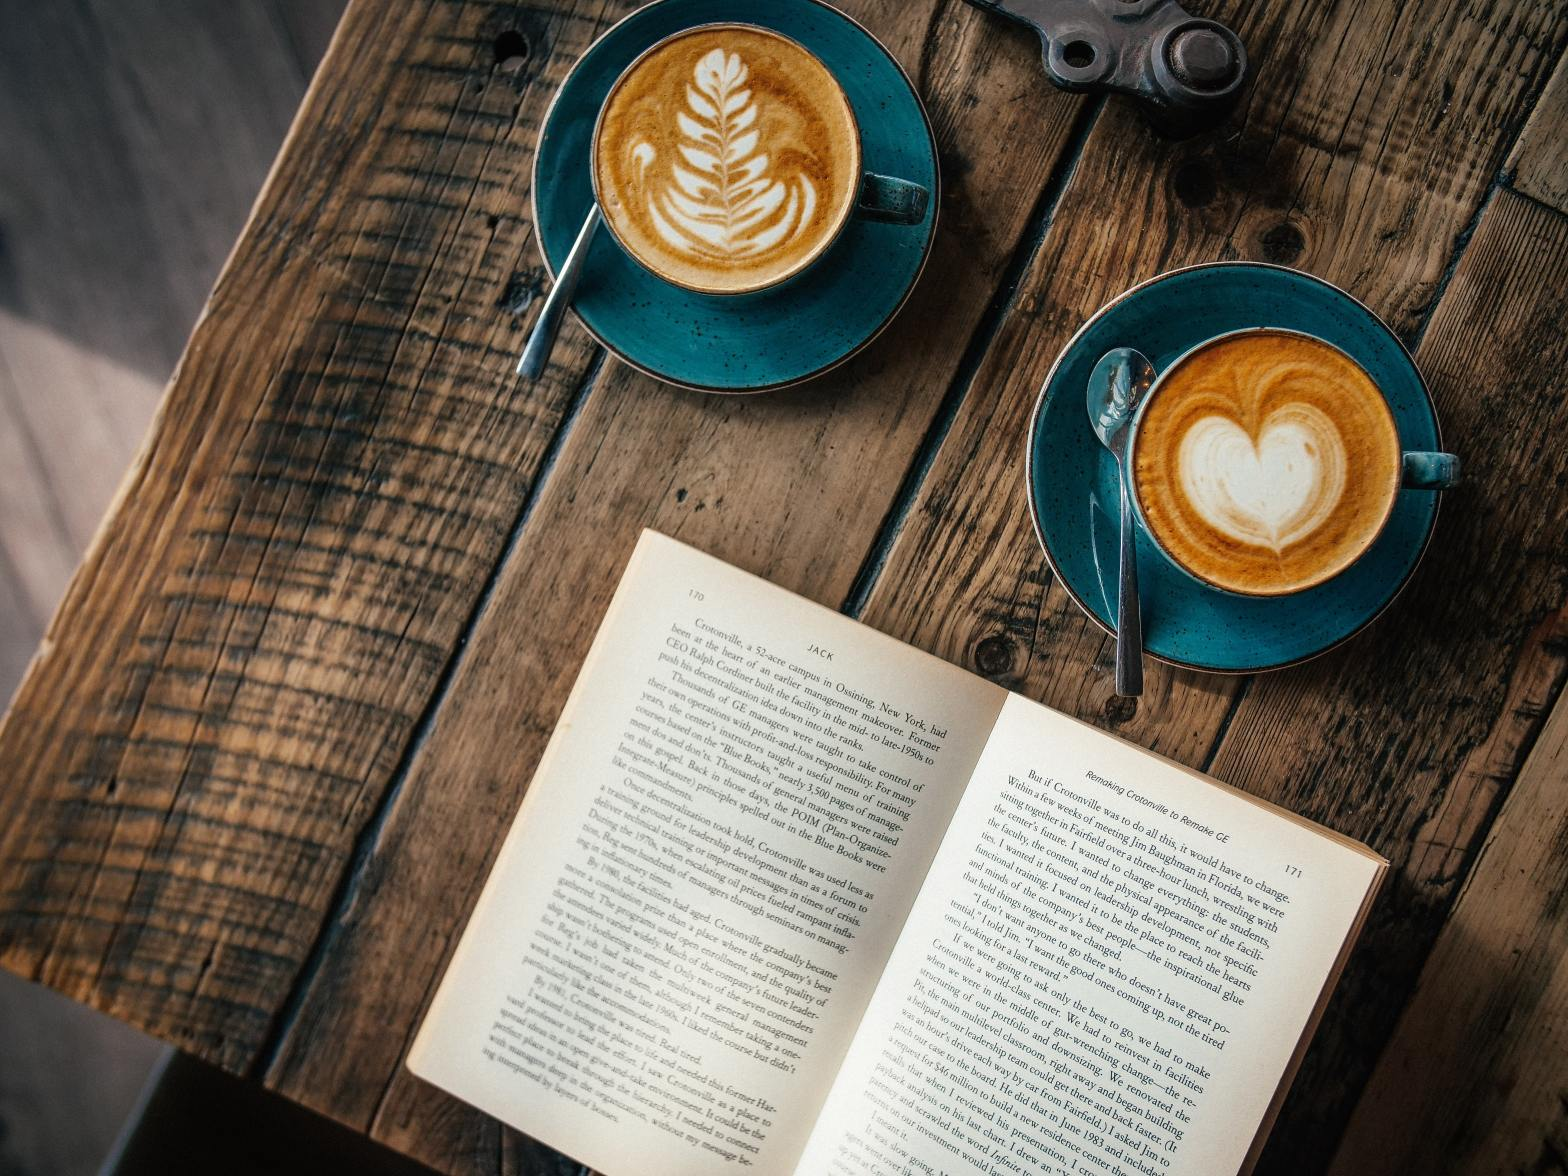 Two coffee cups on a wooden table, news to an open book